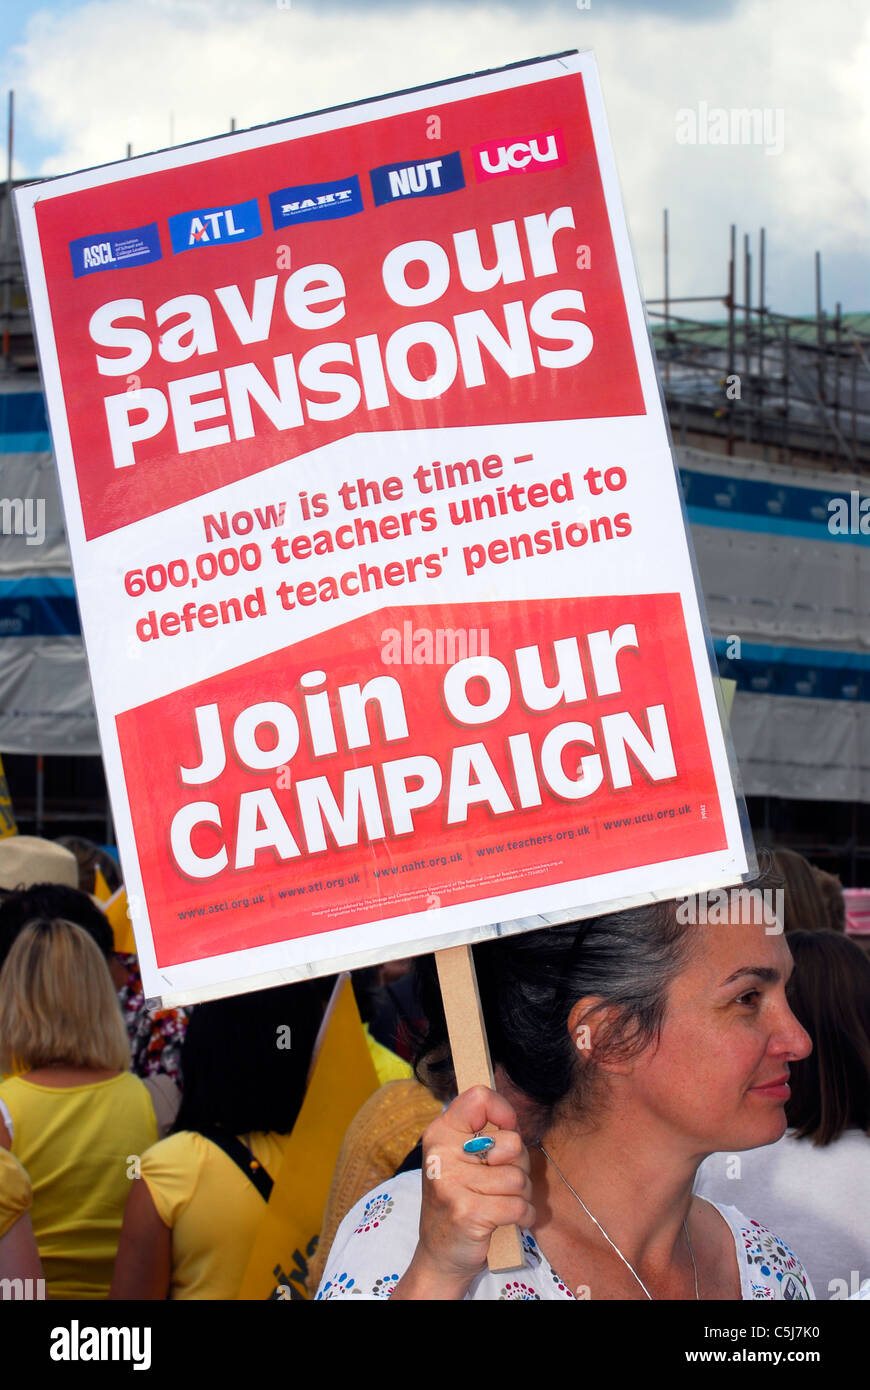 National Union of Teachers striking during protest against public sector cuts, Southampton, Hampshire, UK, 30 June - Stock Image